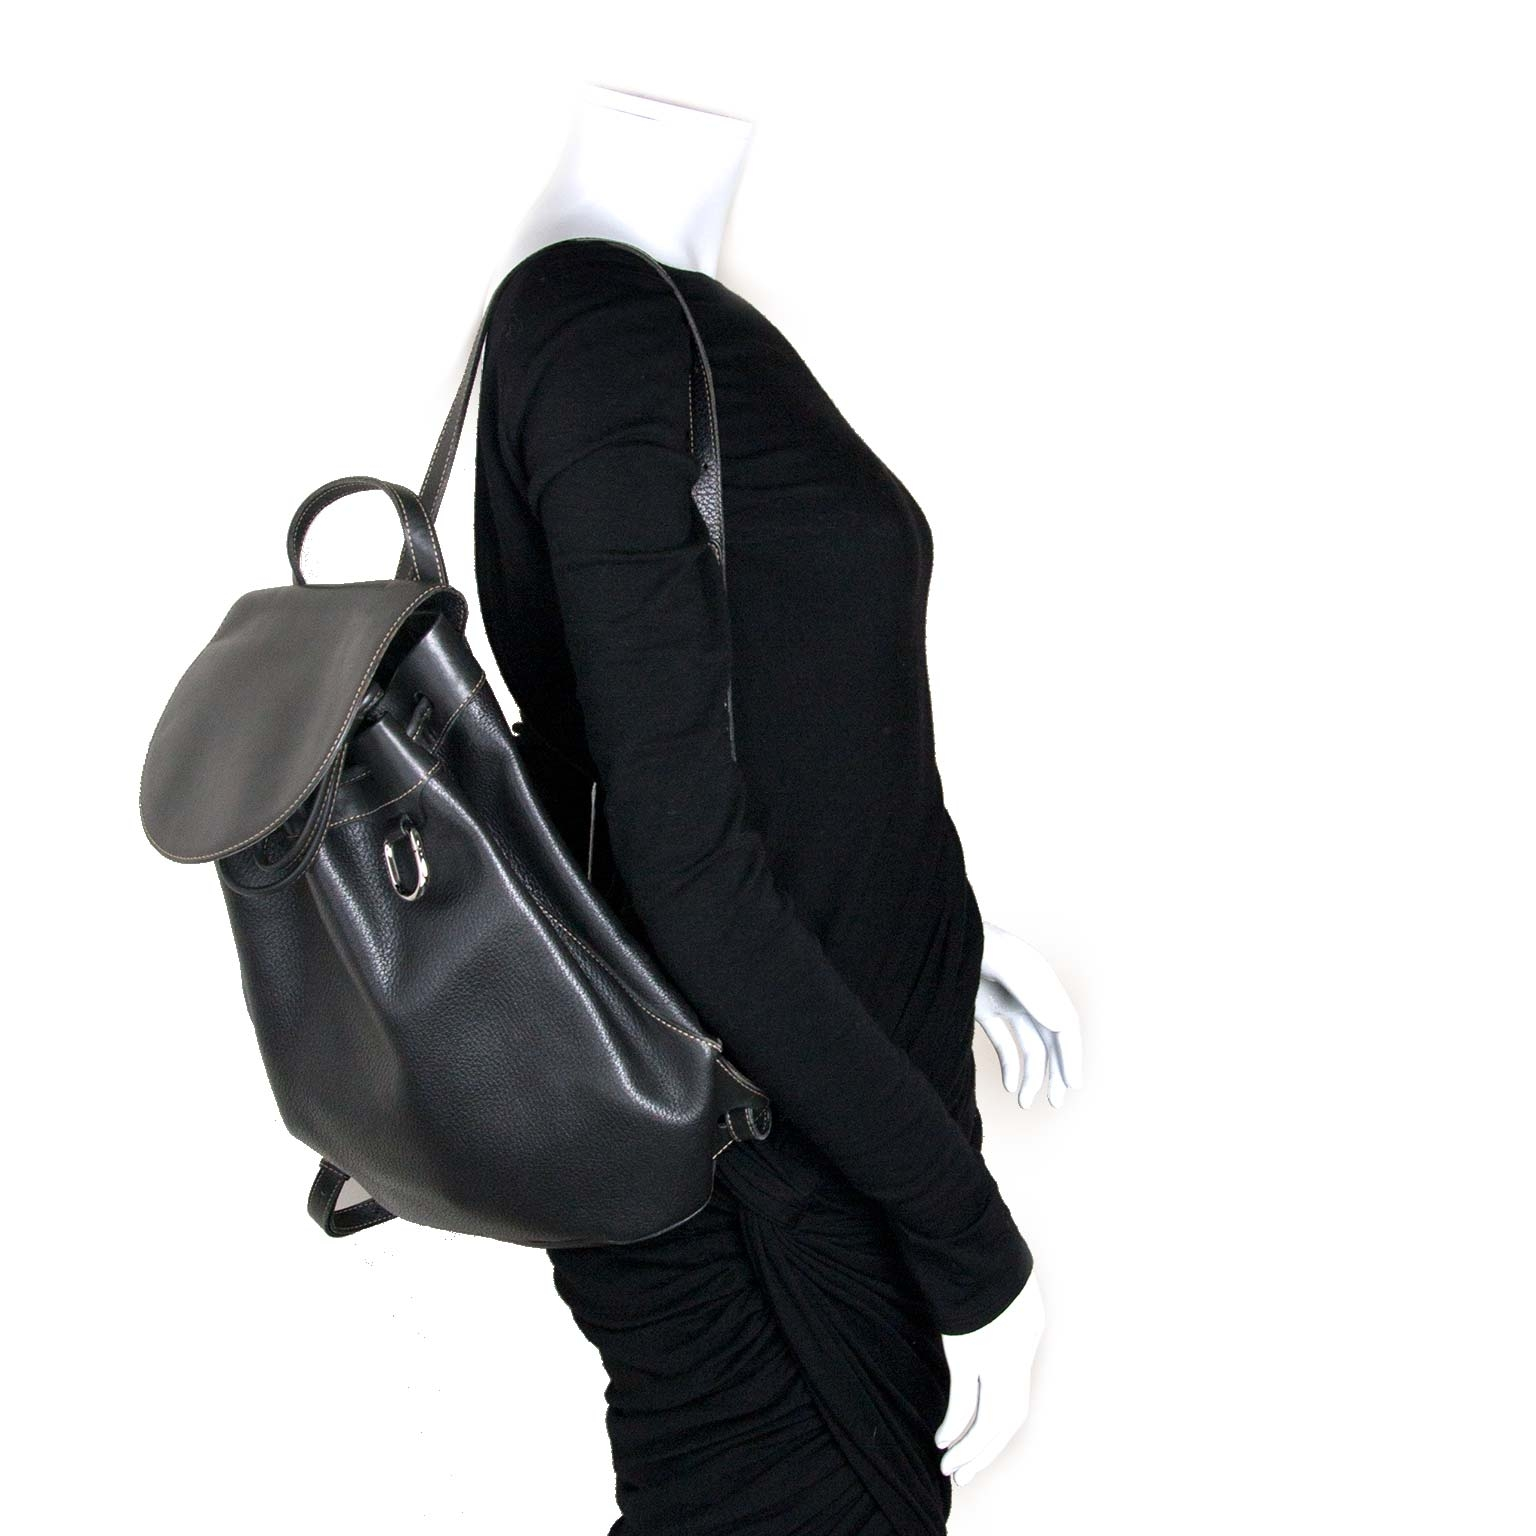 Deux De Delvaux Black Leather Backpack outfit styled for the best price at Labellov